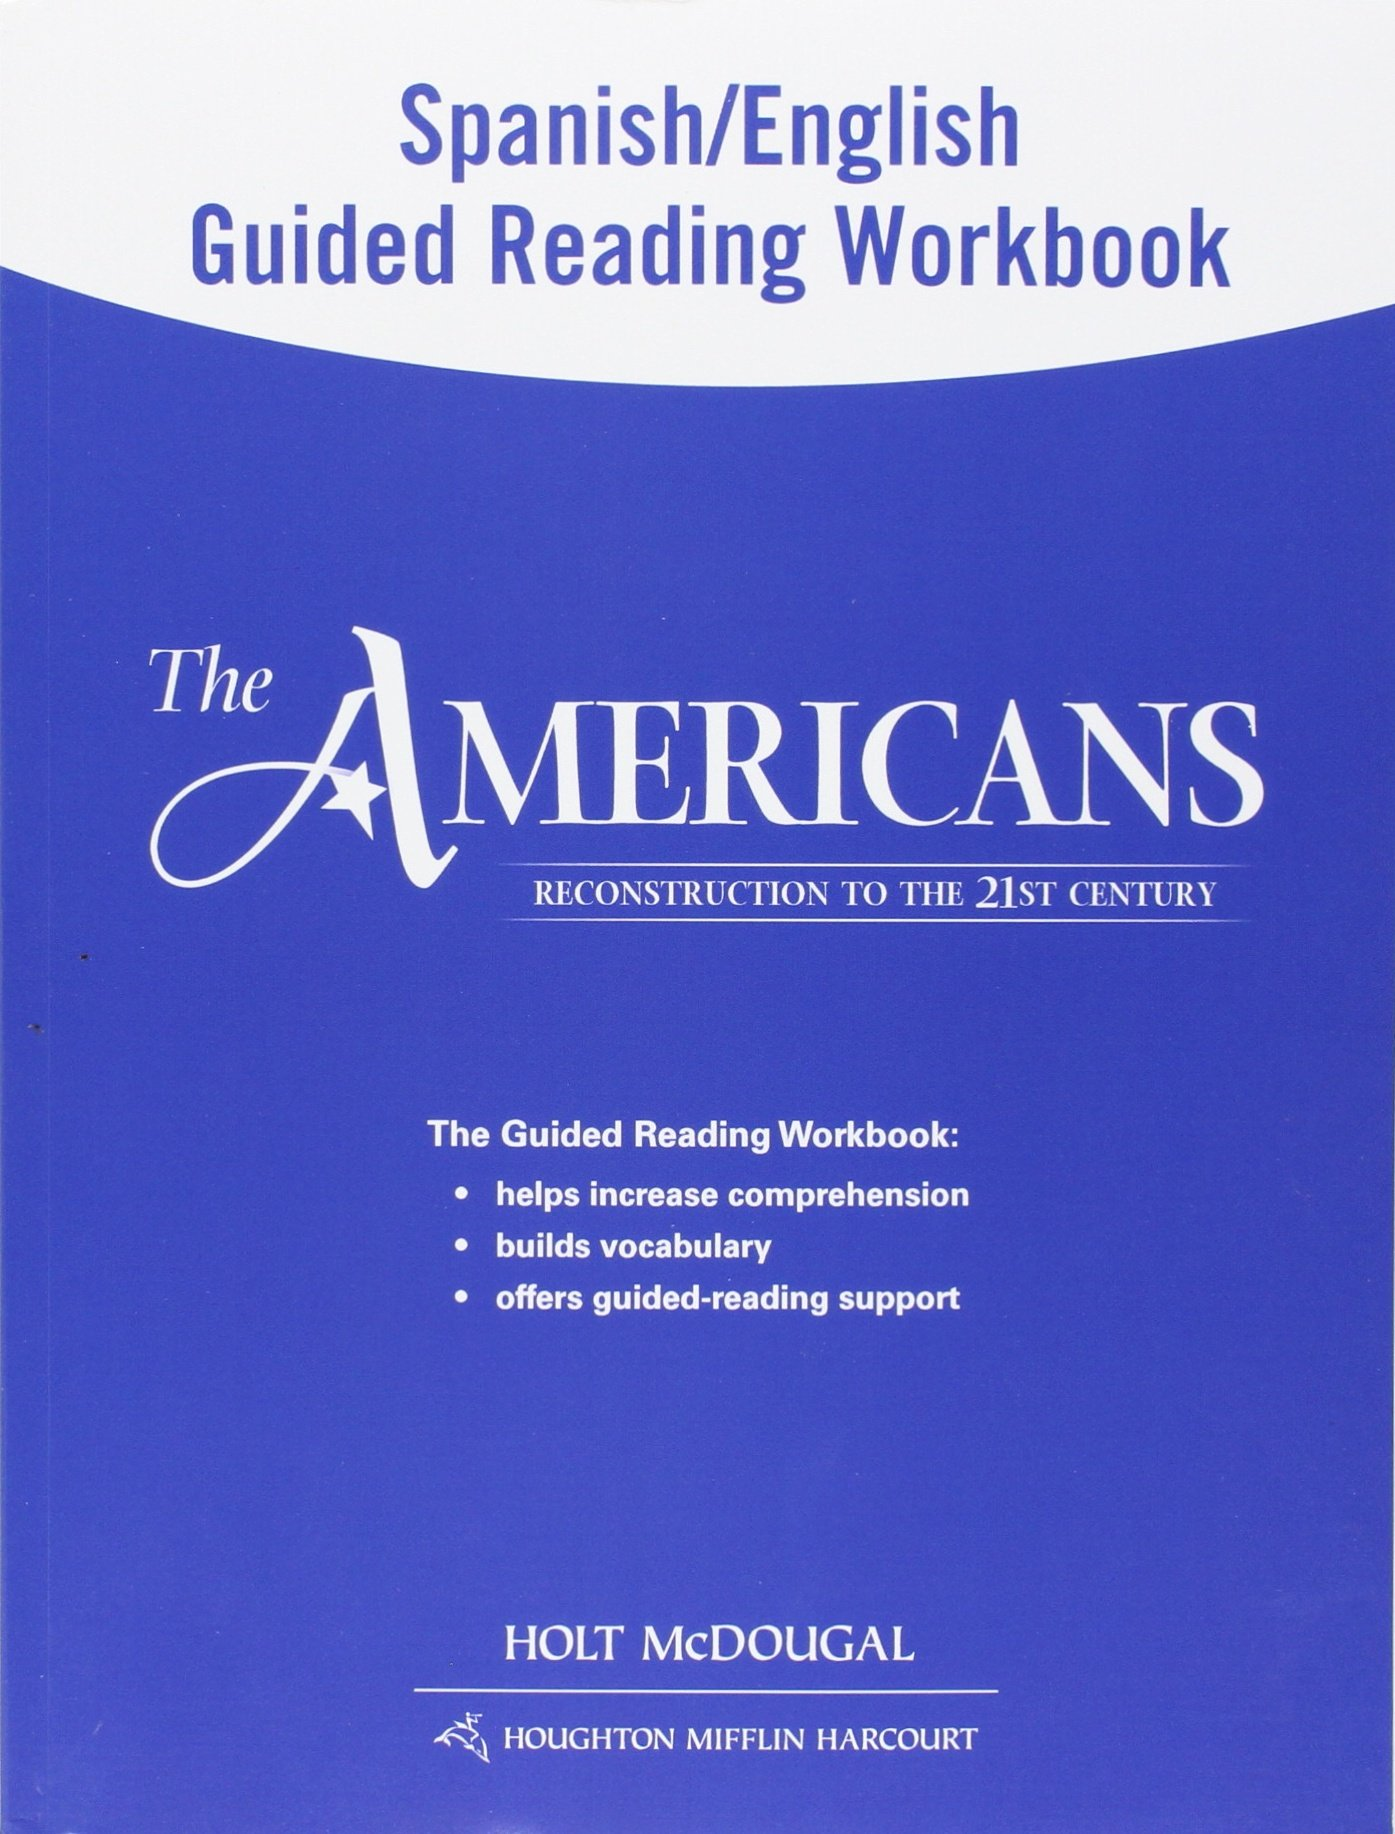 The Americans: Spanish/English Guided Reading Workbook Reconstruction to the 21st Century (Spanish Edition) pdf epub